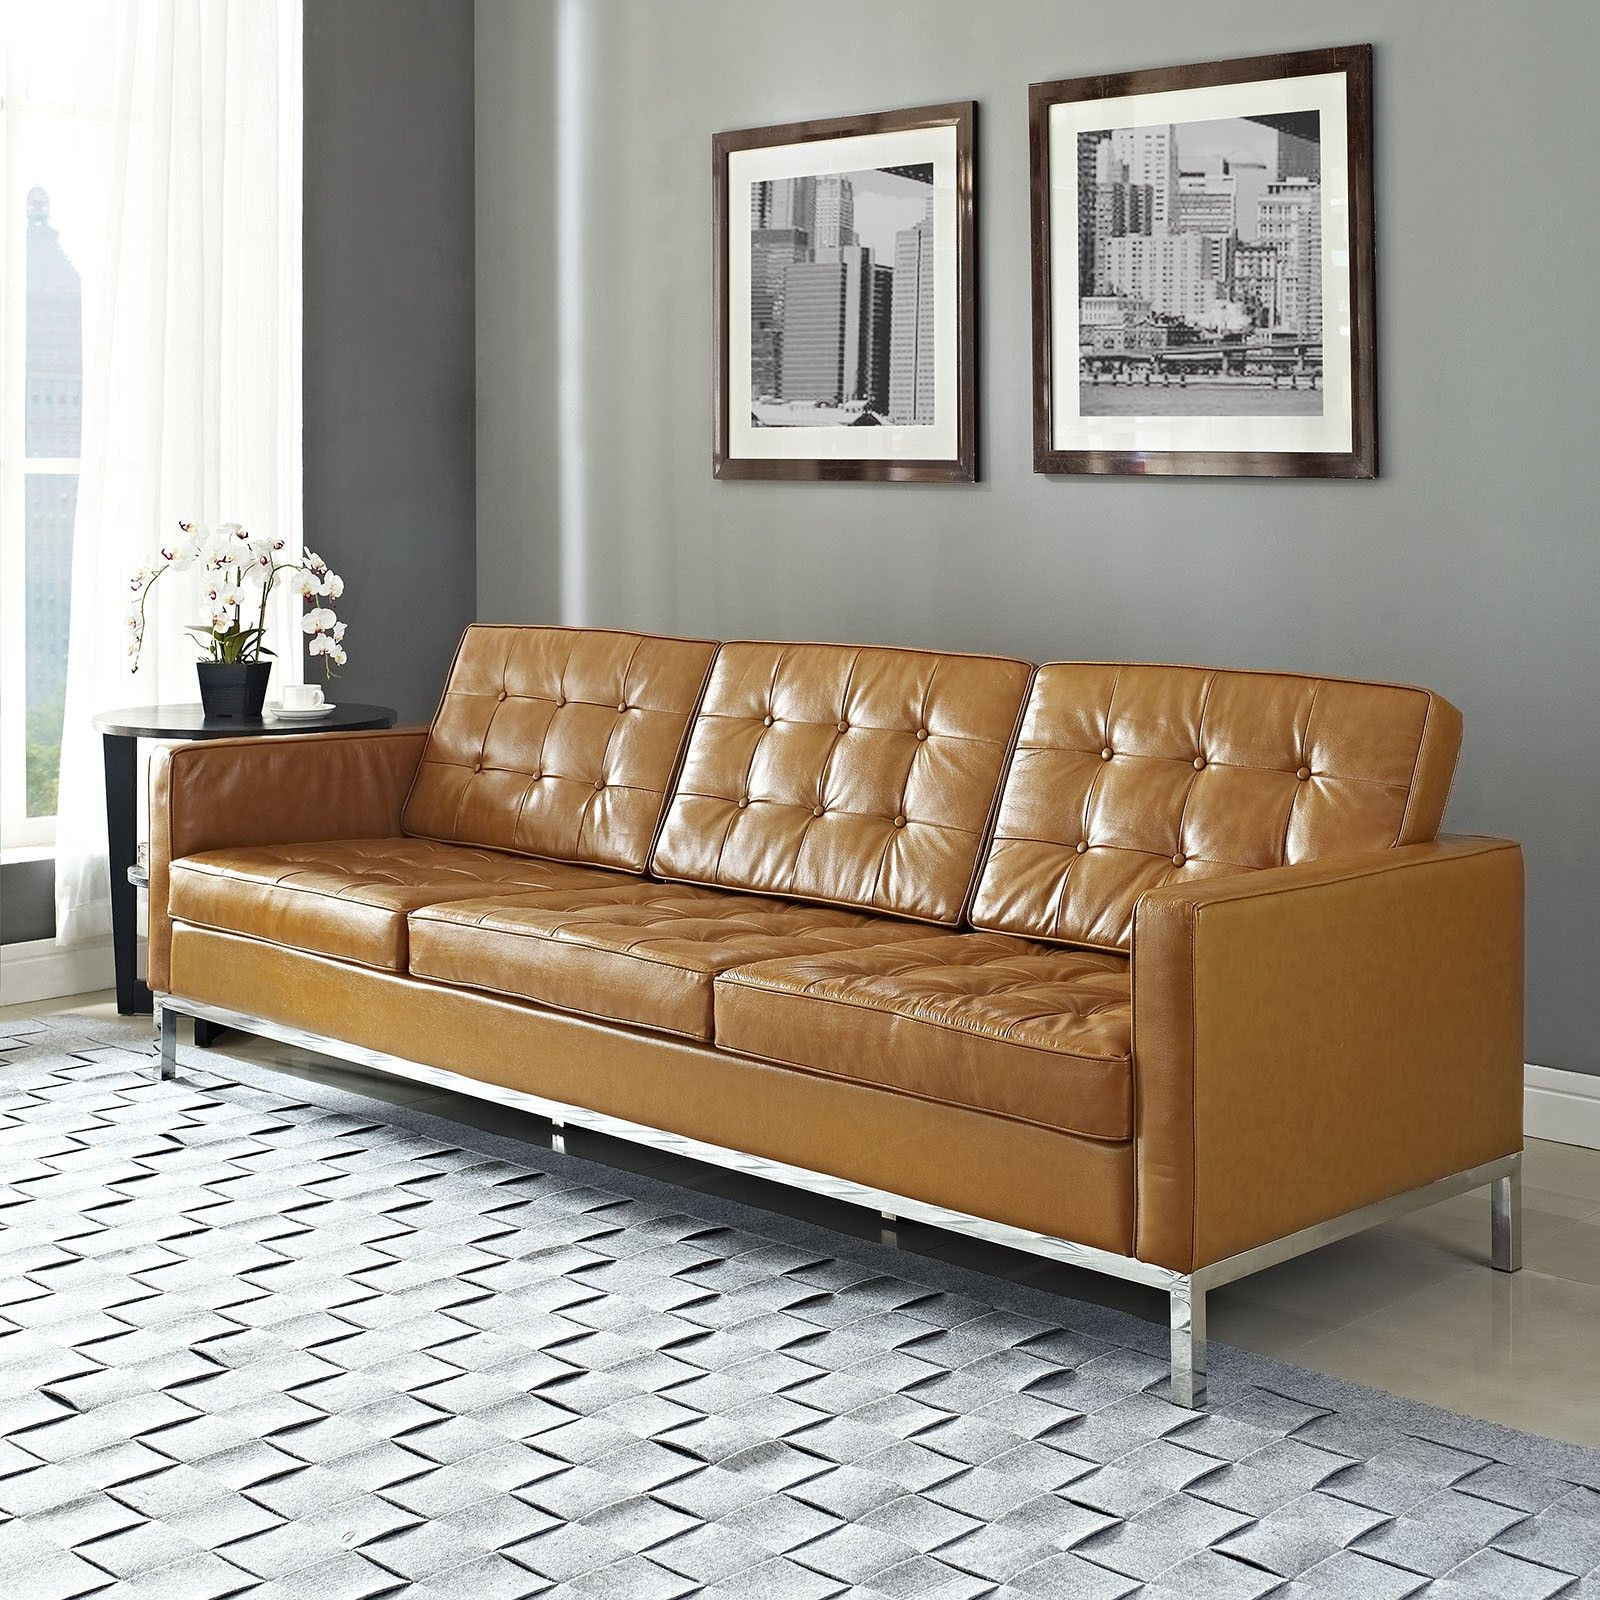 Furniture Mid Century Brown Leather Modern Tufted Sofa With